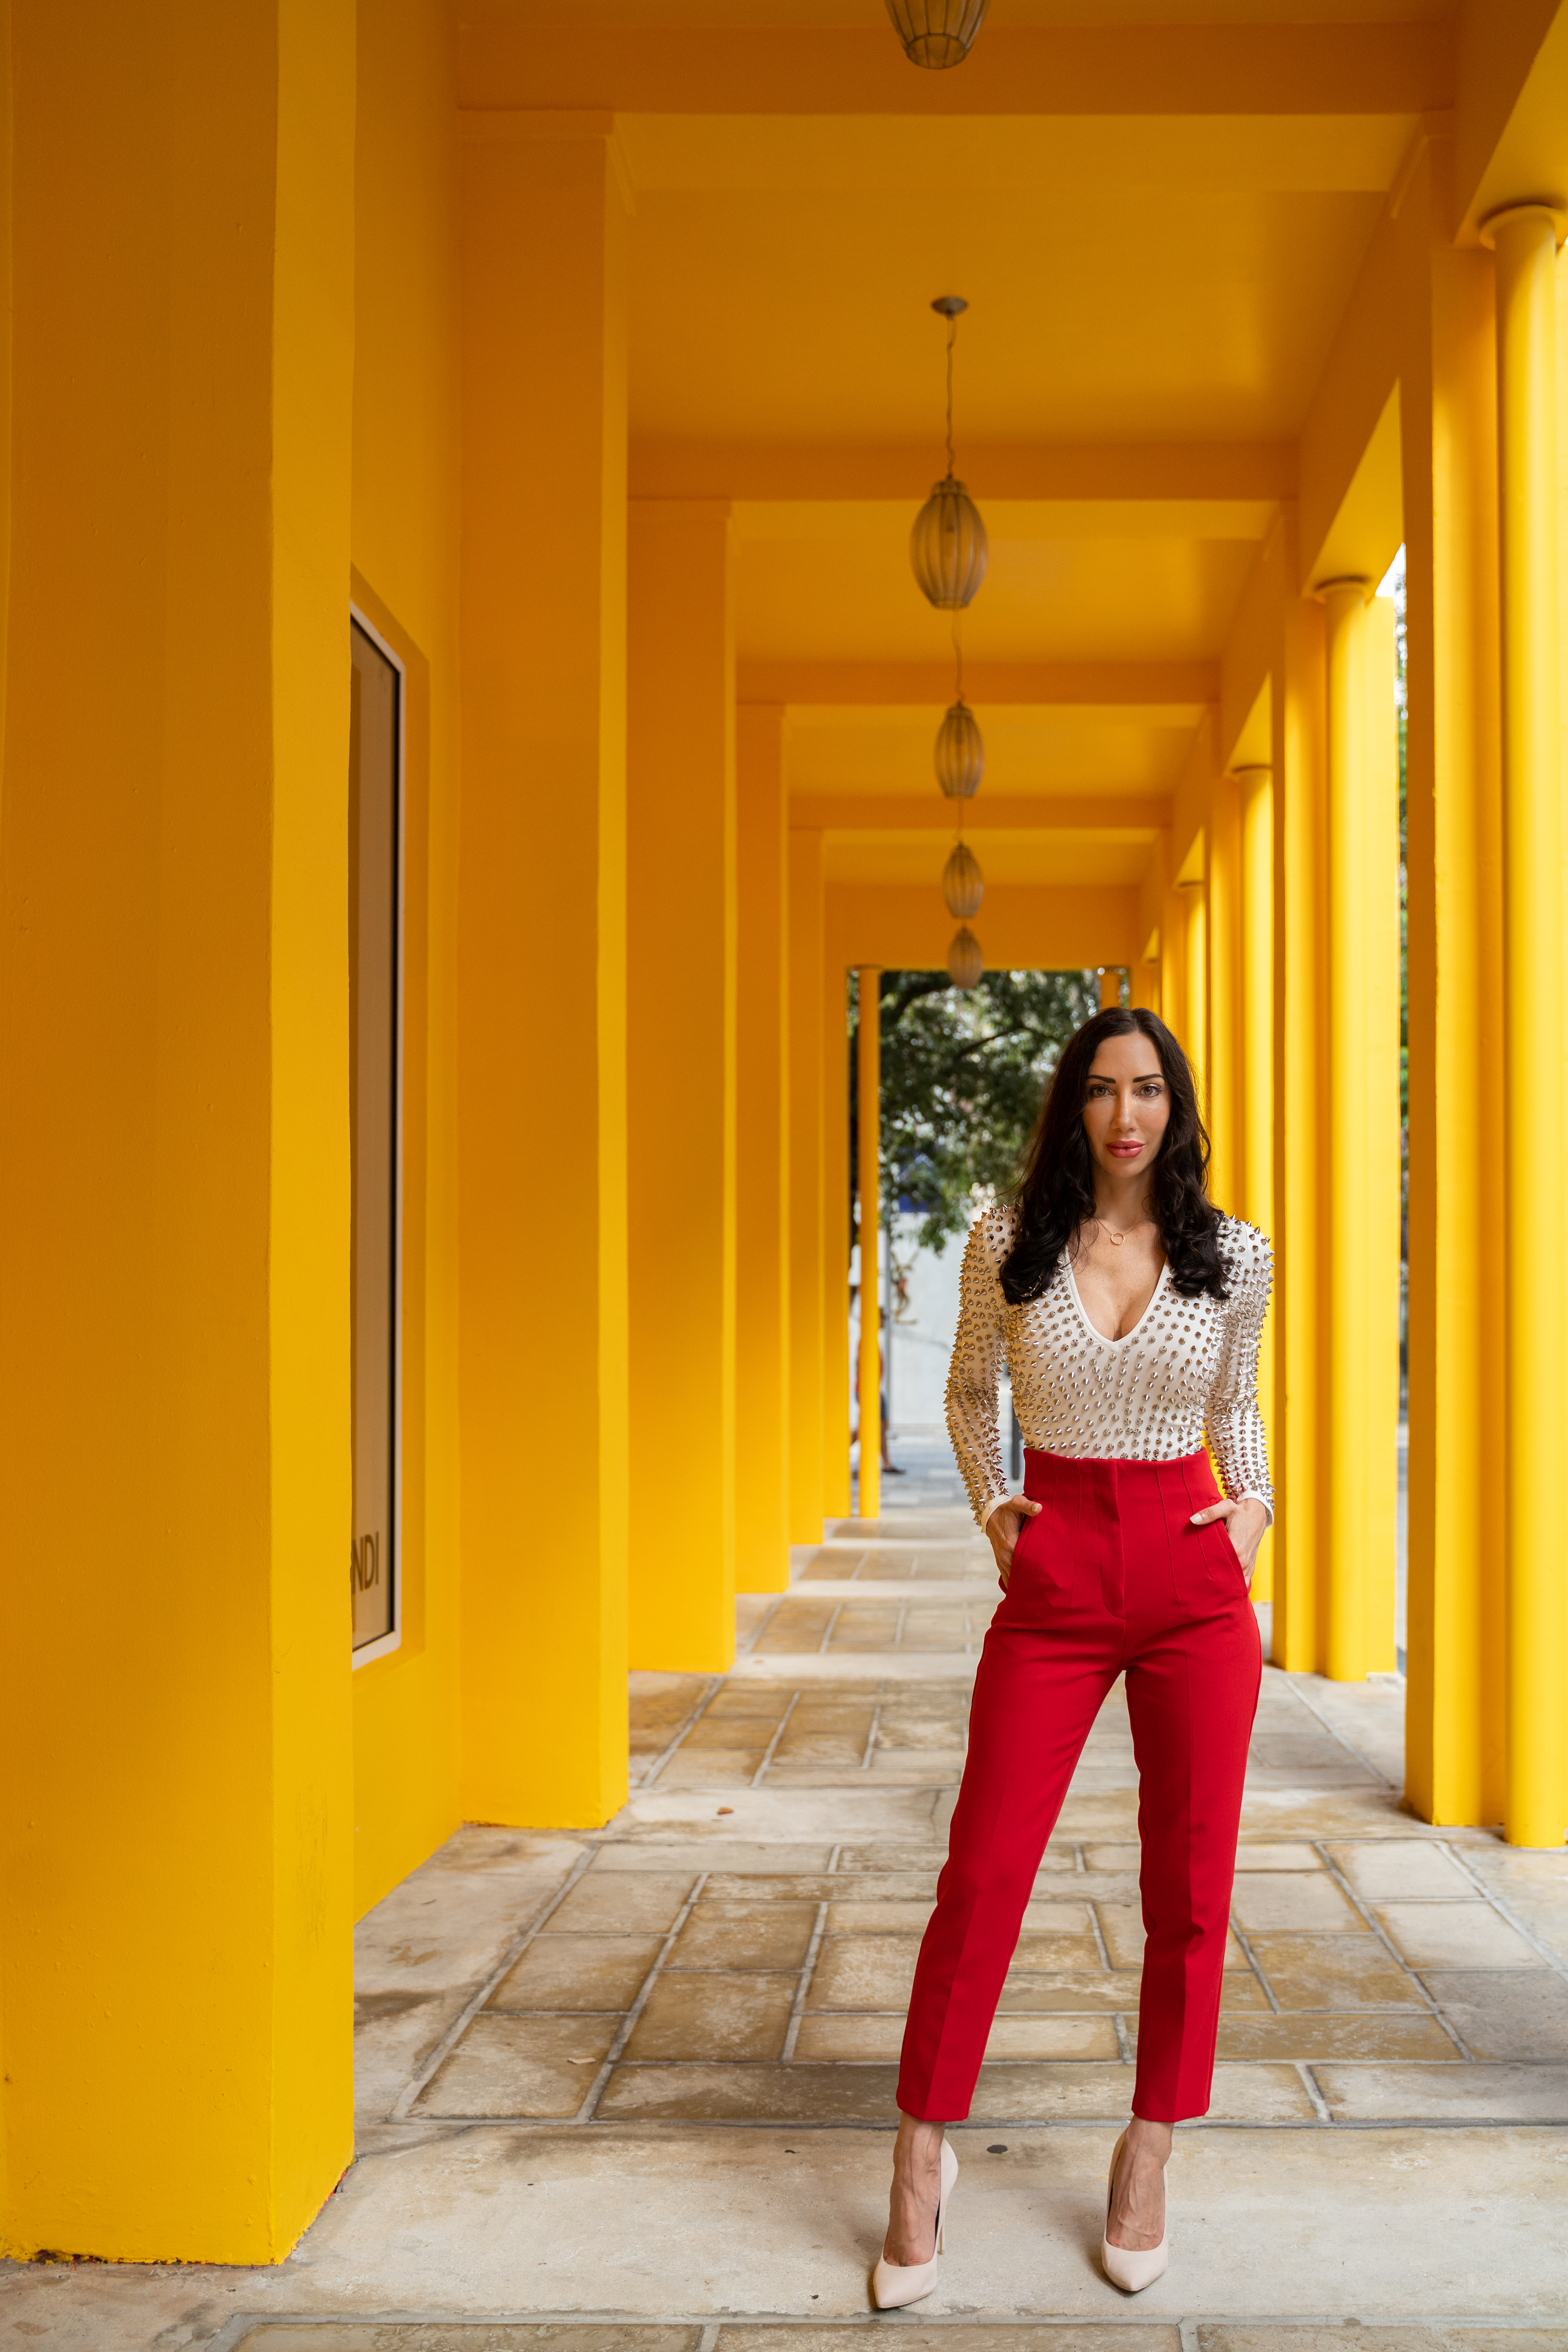 Dr. Kate Balestrieri, in the Miami Design District.